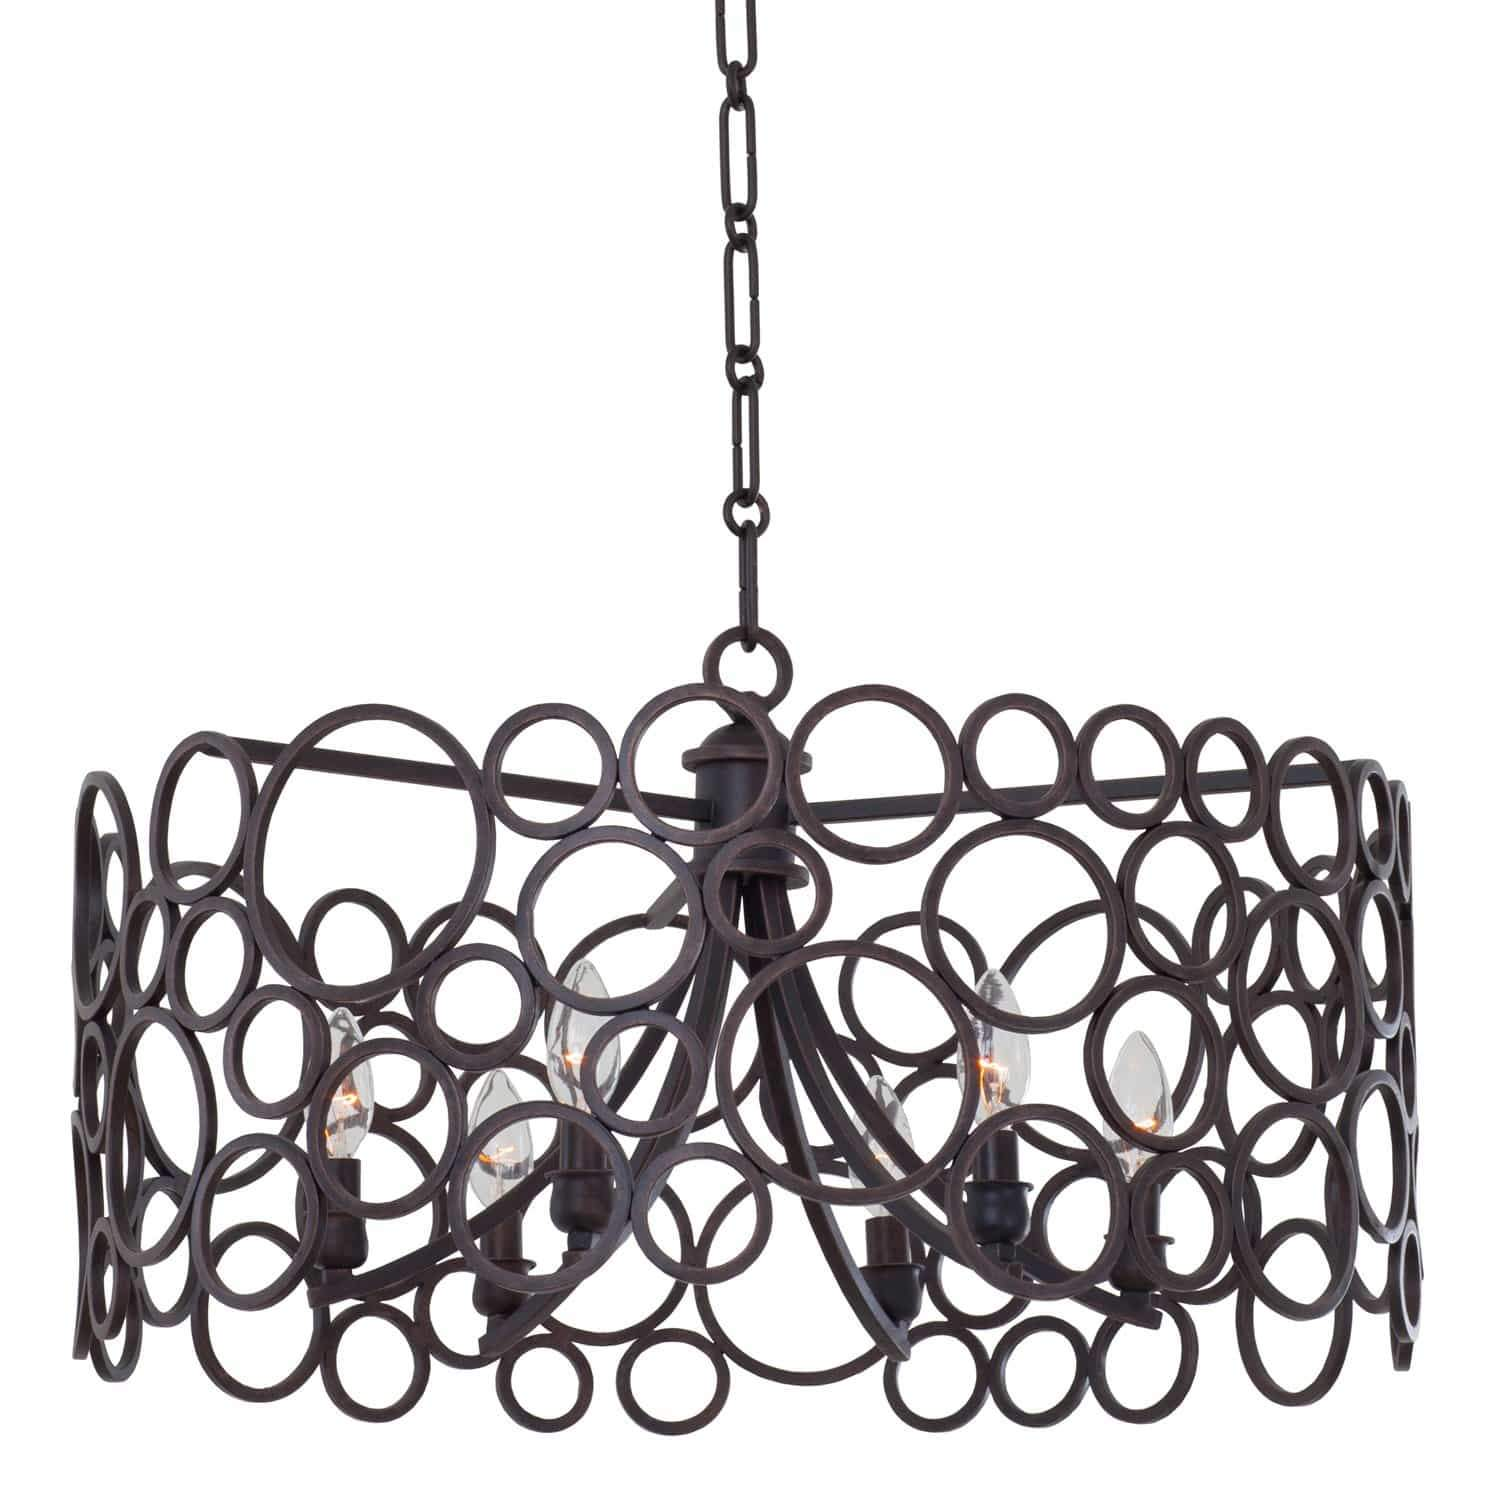 Kalco Lighting Pendants Heirloom Bronze Ashbourne Small Foyer By Kalco Lighting 2761